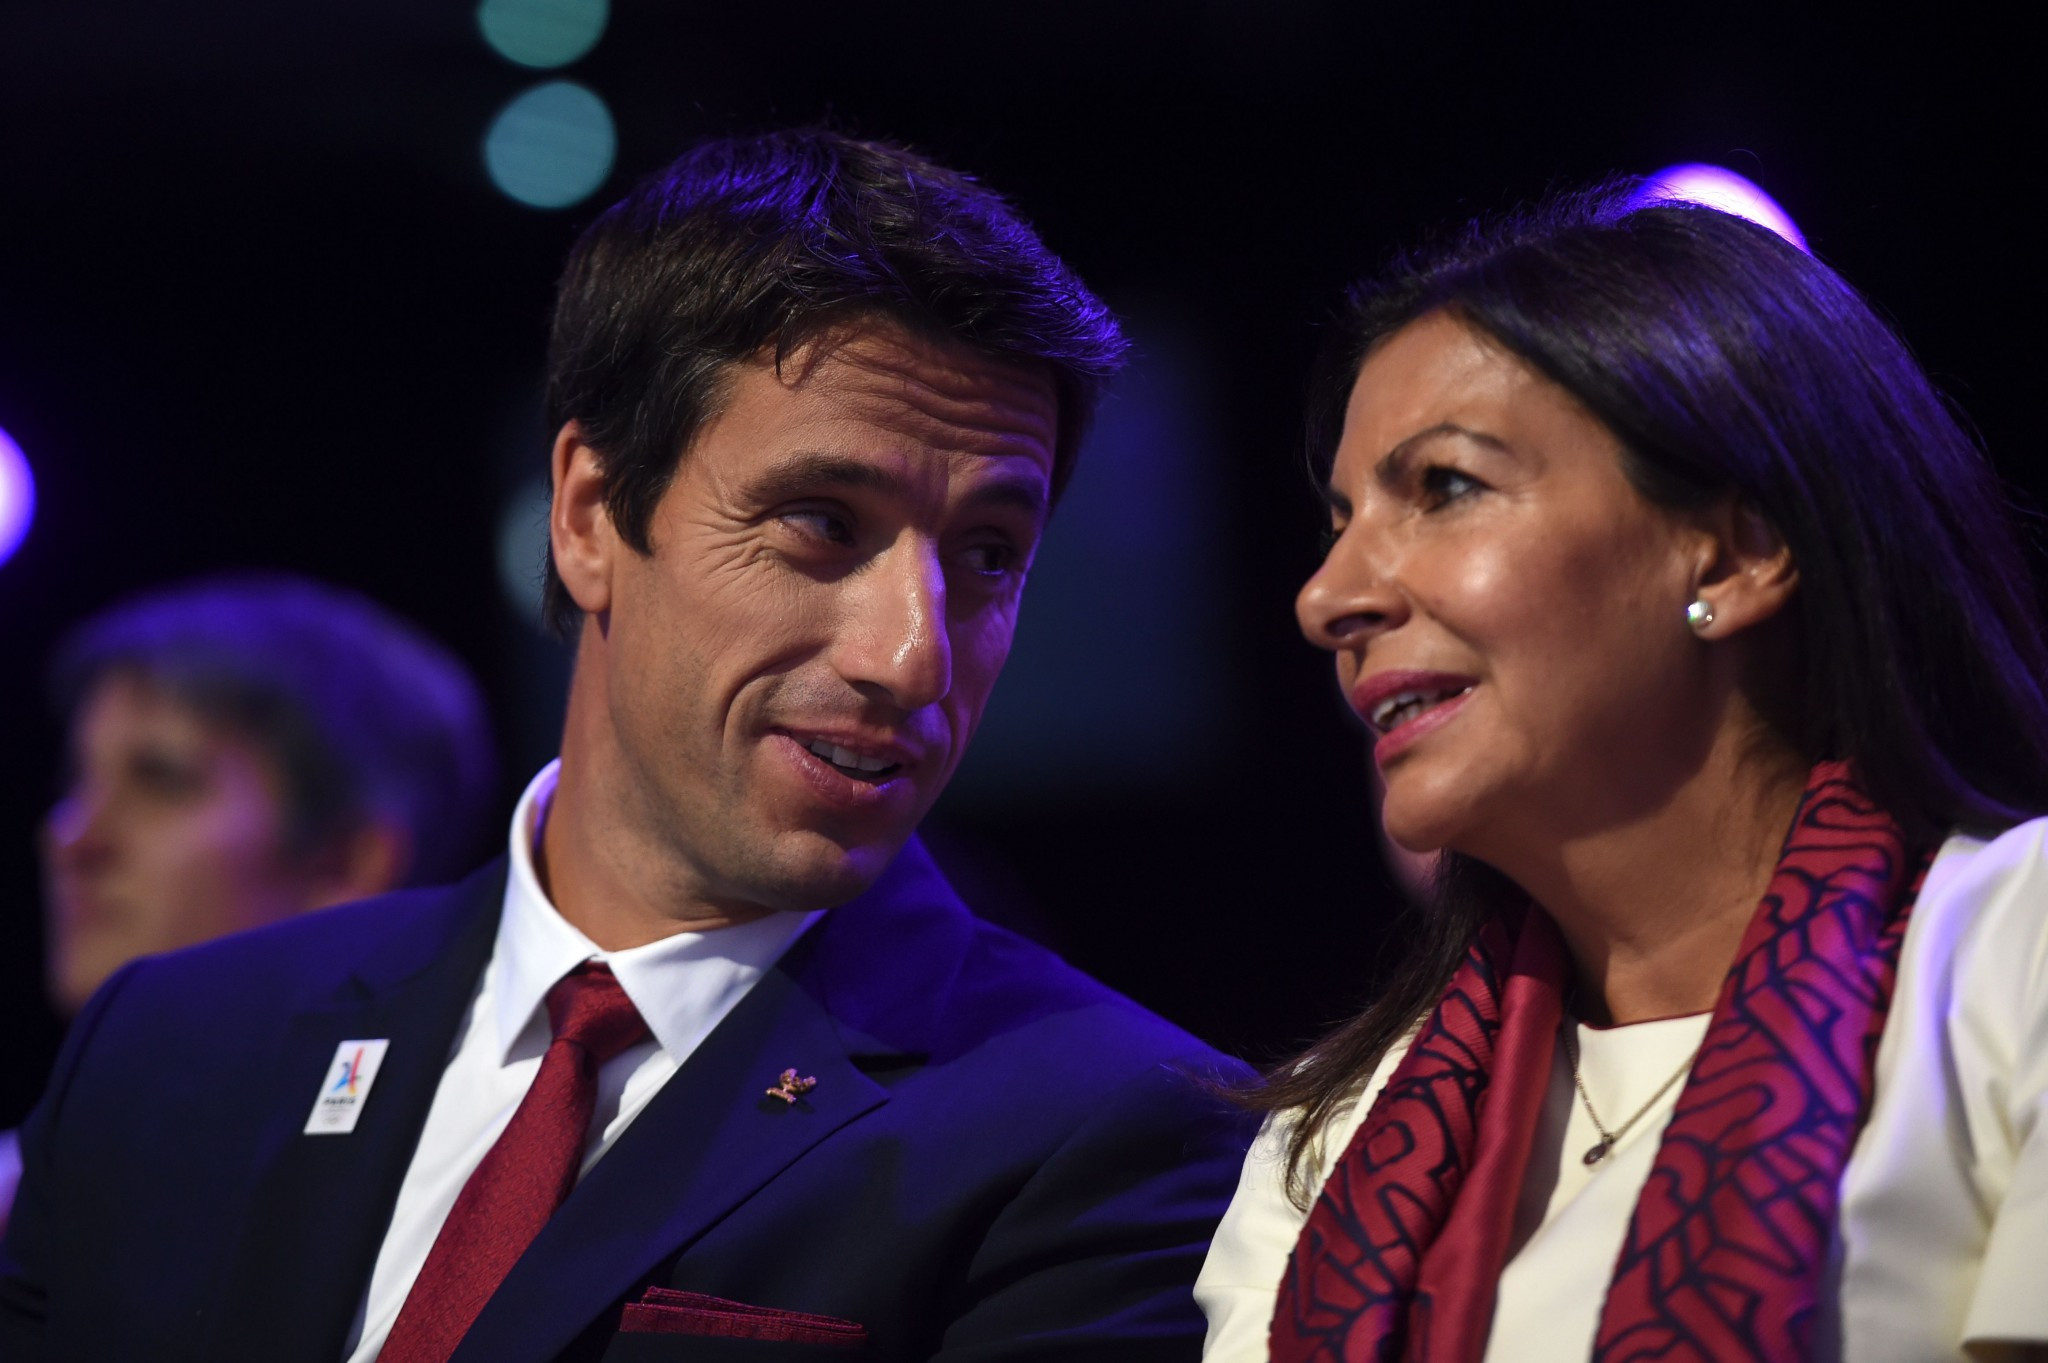 Tony Estanguet, left, and Anne Hidalgo were among leading Paris 2024 speakers ©Getty Images